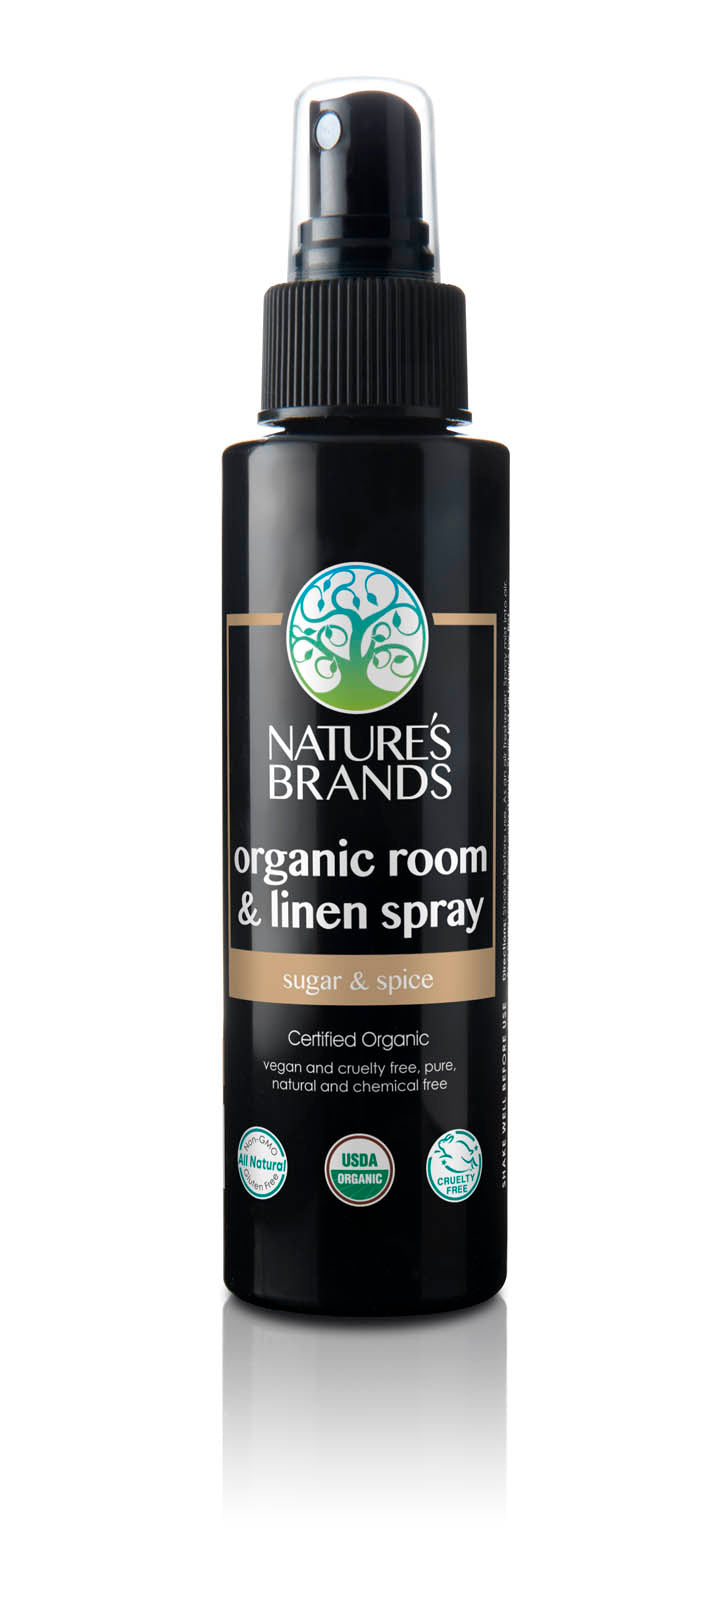 Herbal Choice Mari Organic Linen Spray - Herbal Choice Mari Organic Linen Spray - Herbal Choice Mari Organic Linen Spray